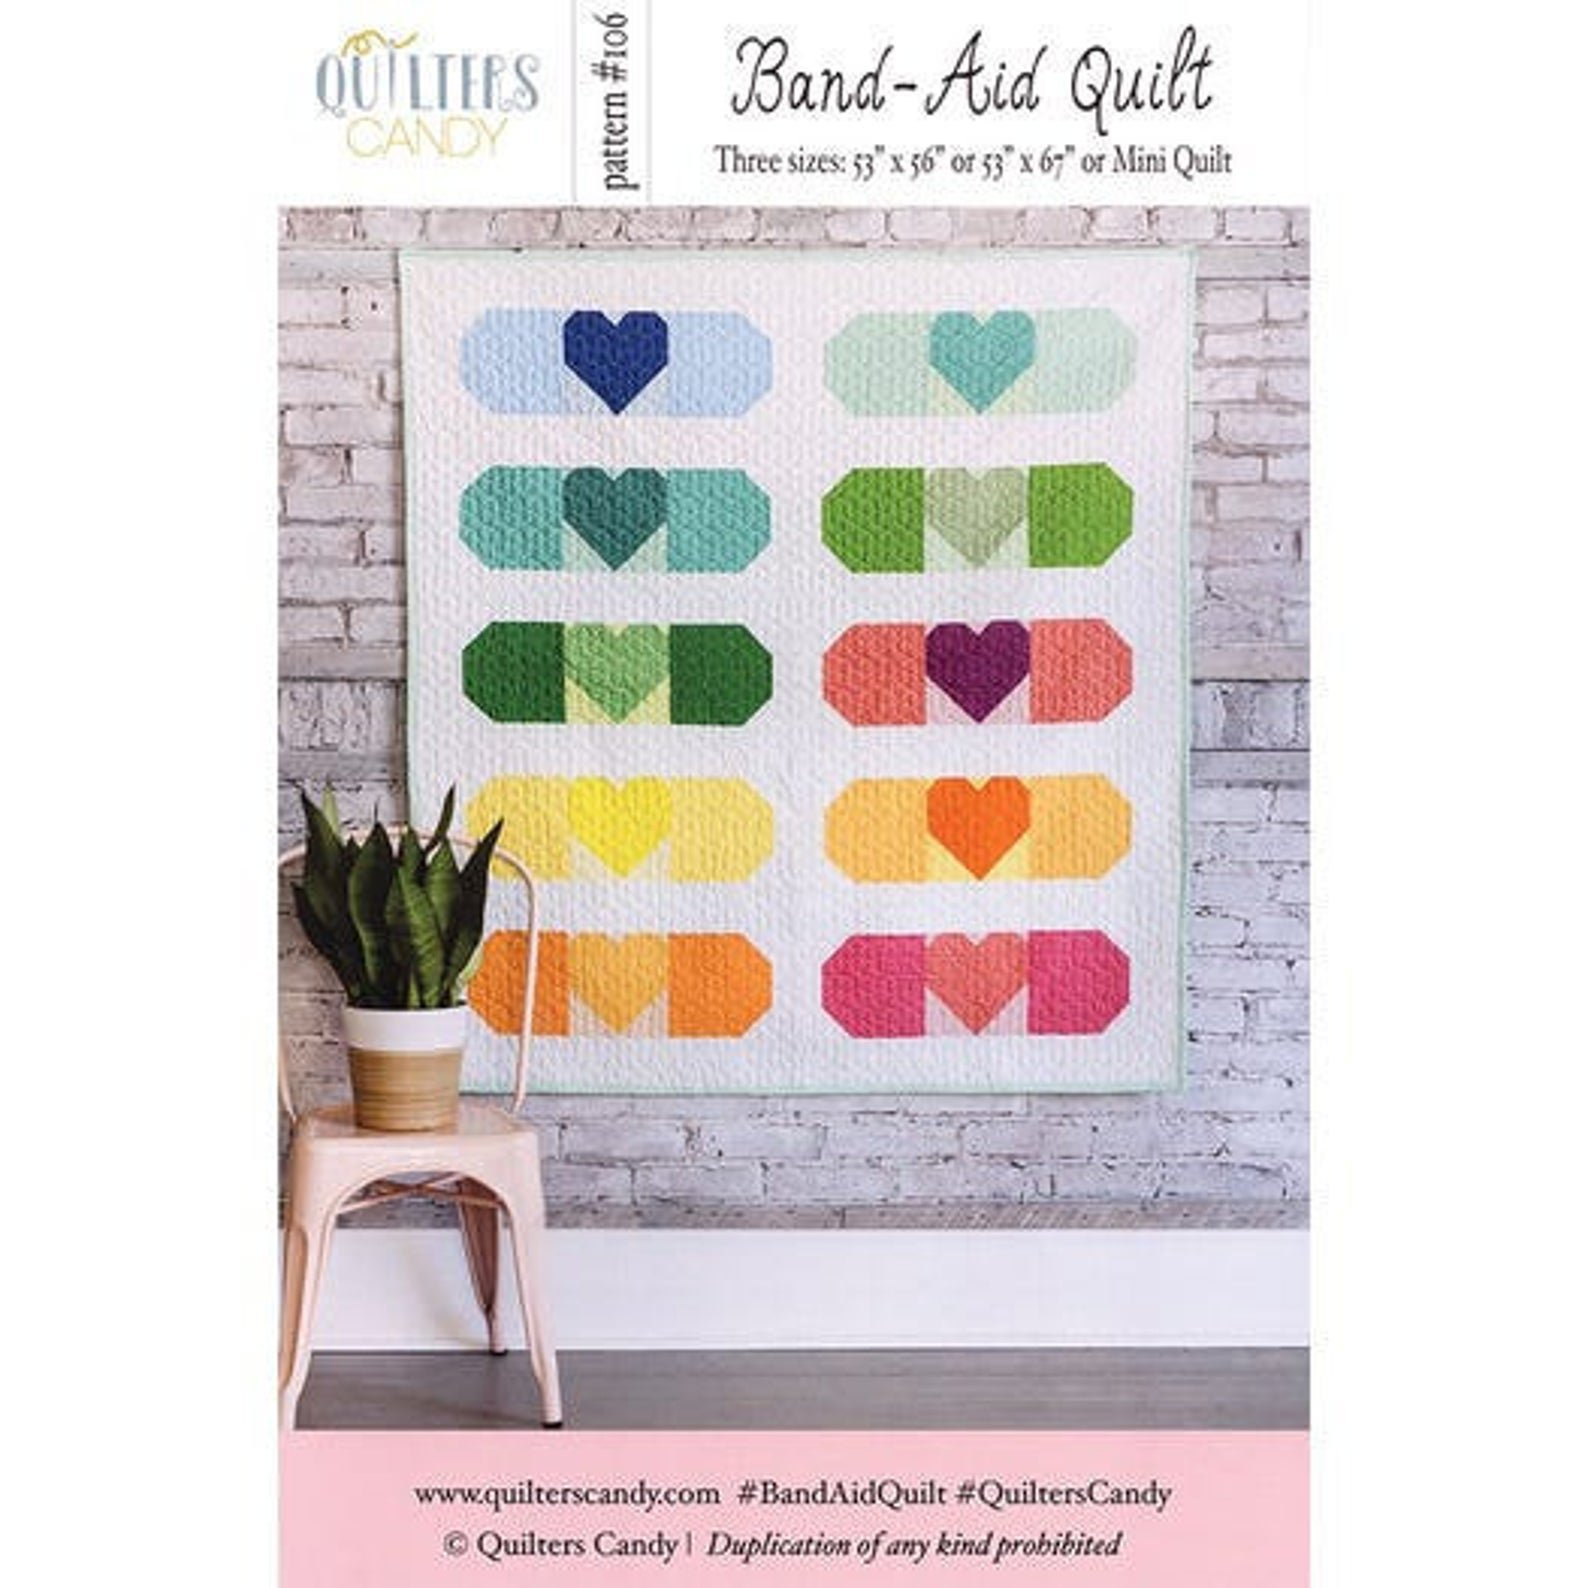 Band-Aid Quilt Pattern by Quilters Candy